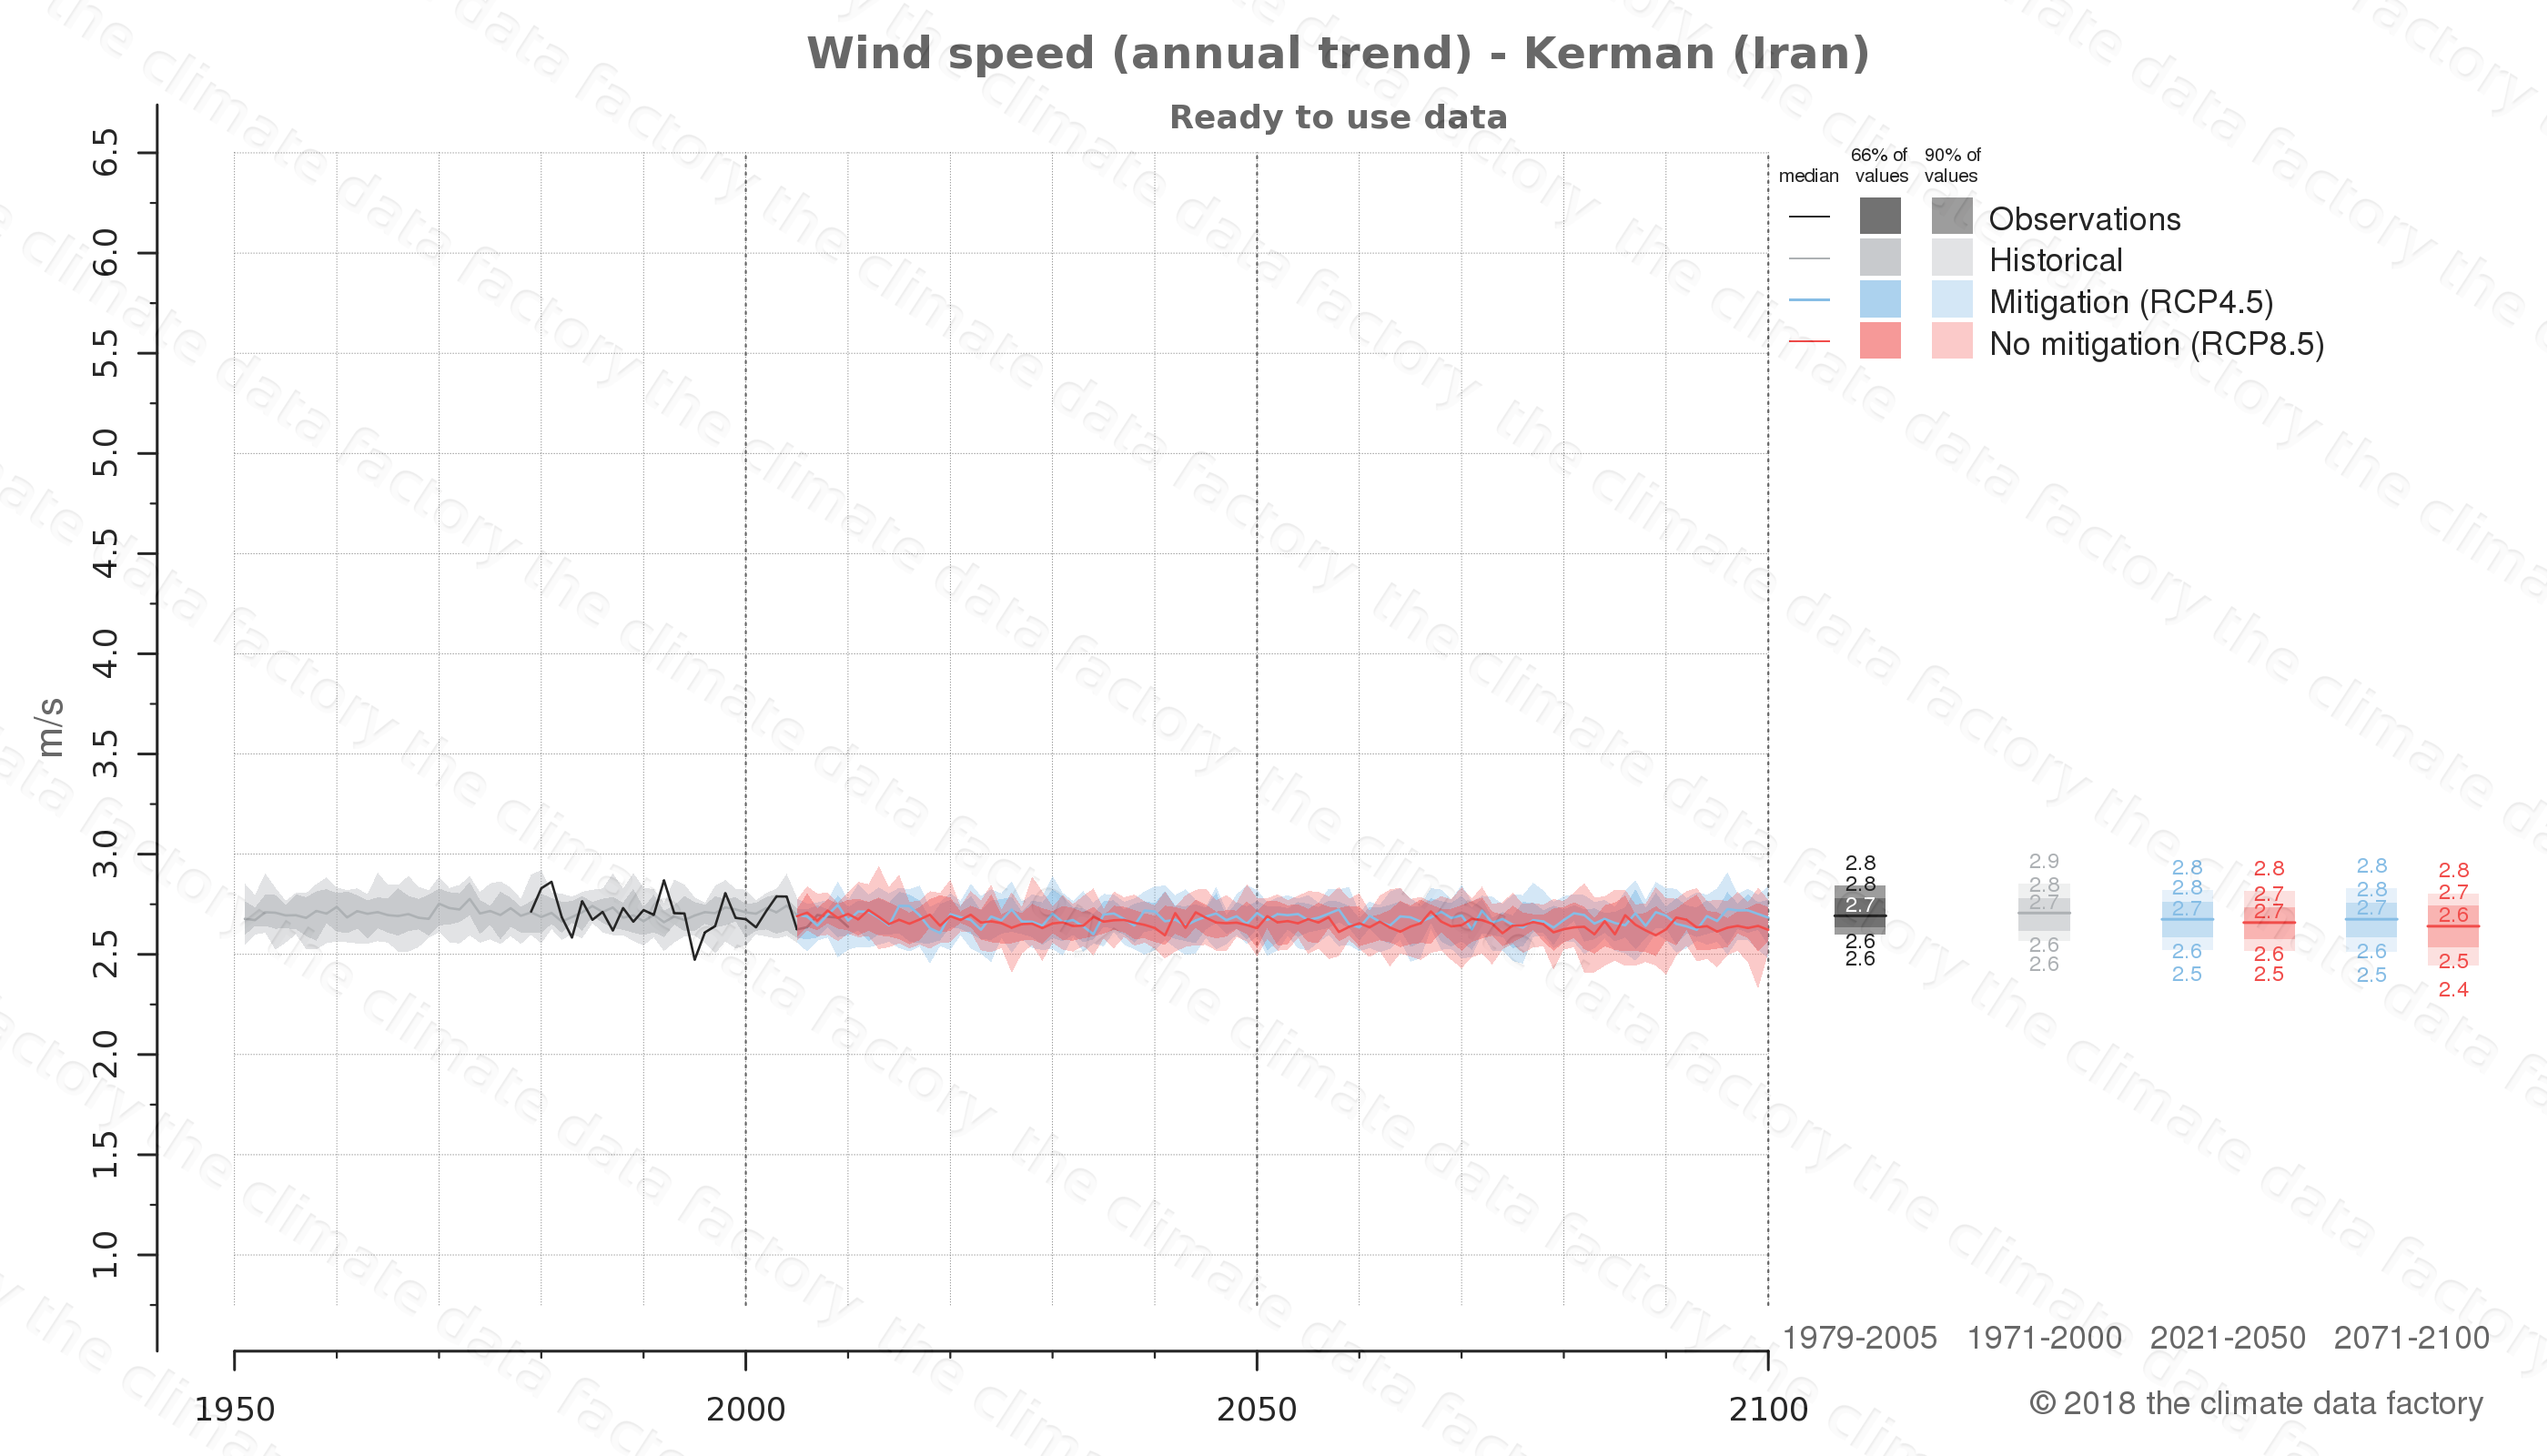 climate change data policy adaptation climate graph city data wind-speed kerman iran